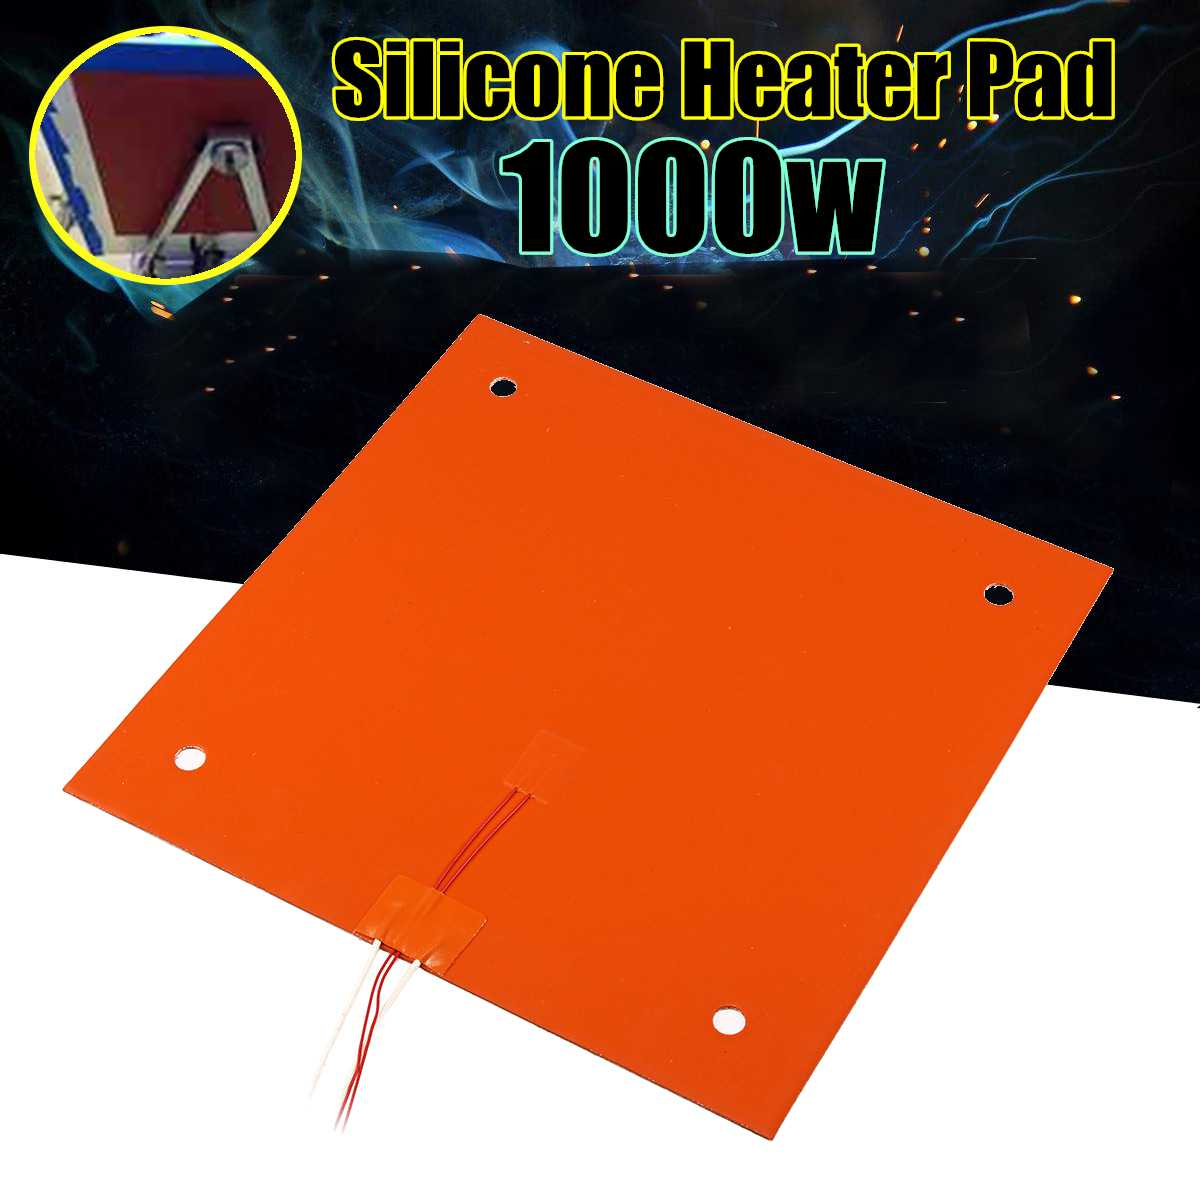 1000W 120V Silicone Heater Pad For CR-10 3D Printer Bed Electric Heating Mat Heatbed 3D Printer Parts Accessories 310x310mm